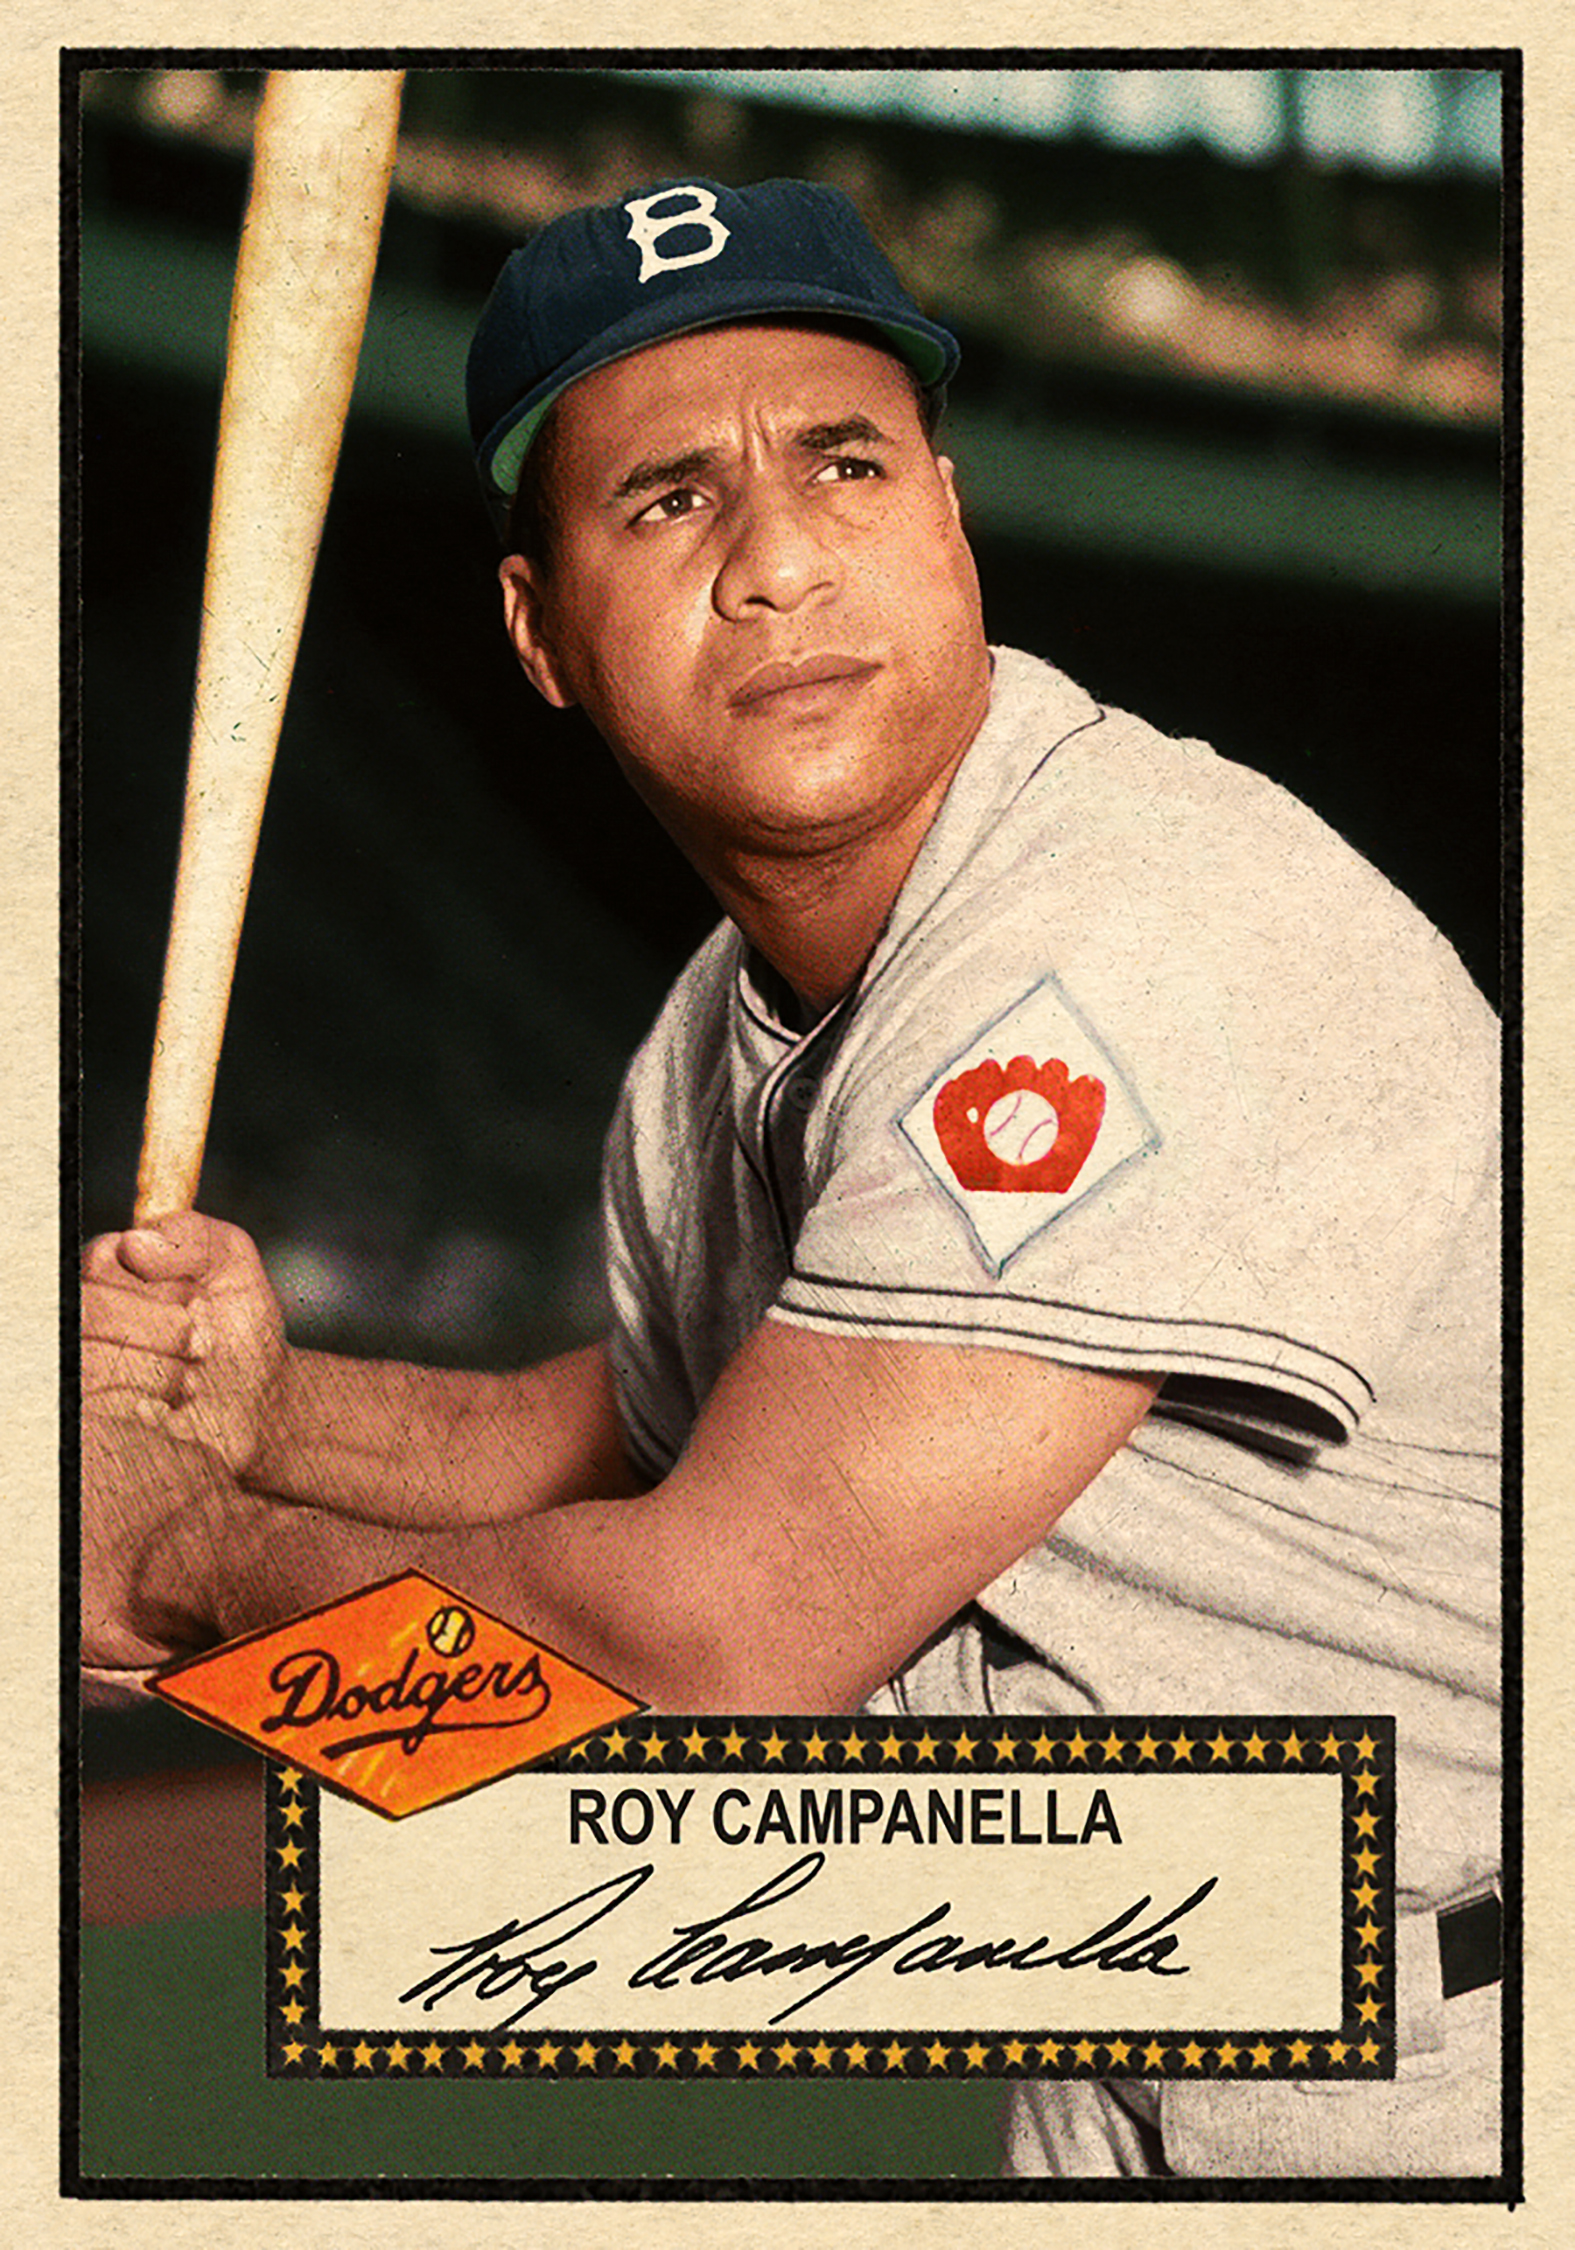 52 Baseball #275ROY CAMPANELLA HI# - I just love my Campanella cards. This image was from the summer of '51. Great care was taken to match Roy's soft skin tone and dark eyebrows.SOLD FOR 200.50 USD, December 2017